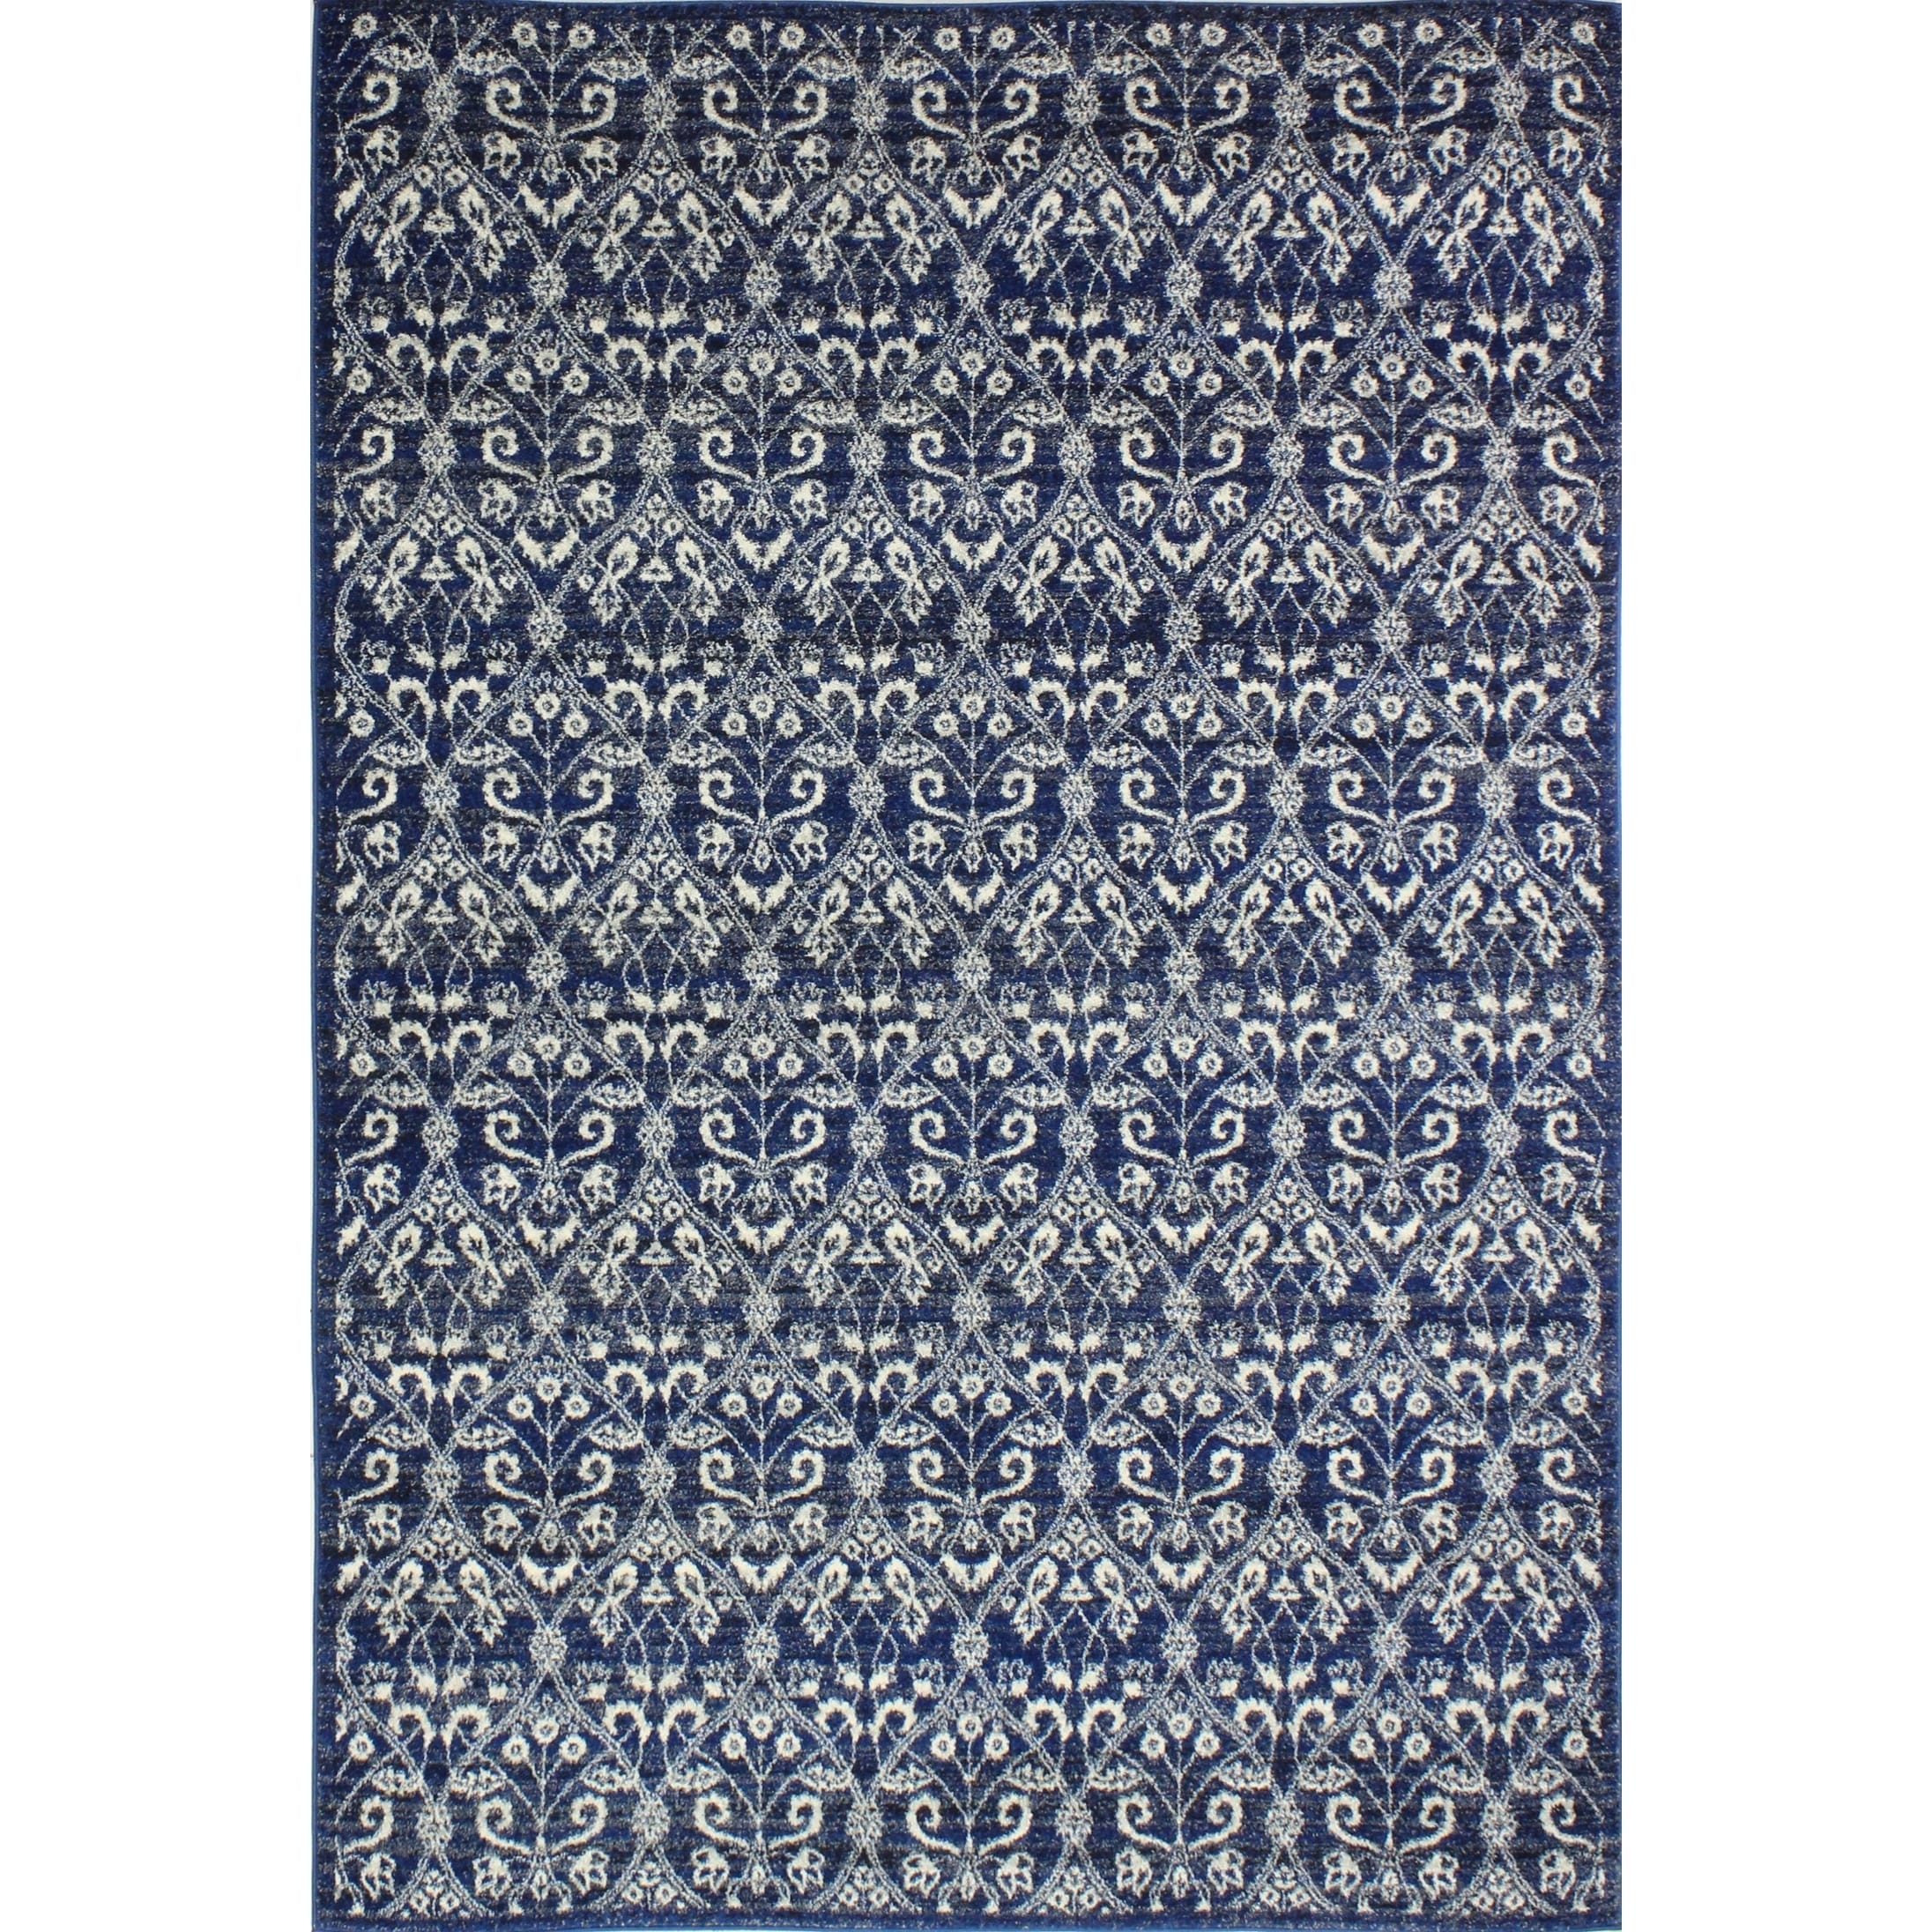 Roxana Dark Blue Transitional  Area Rug - 5' x 7'6""